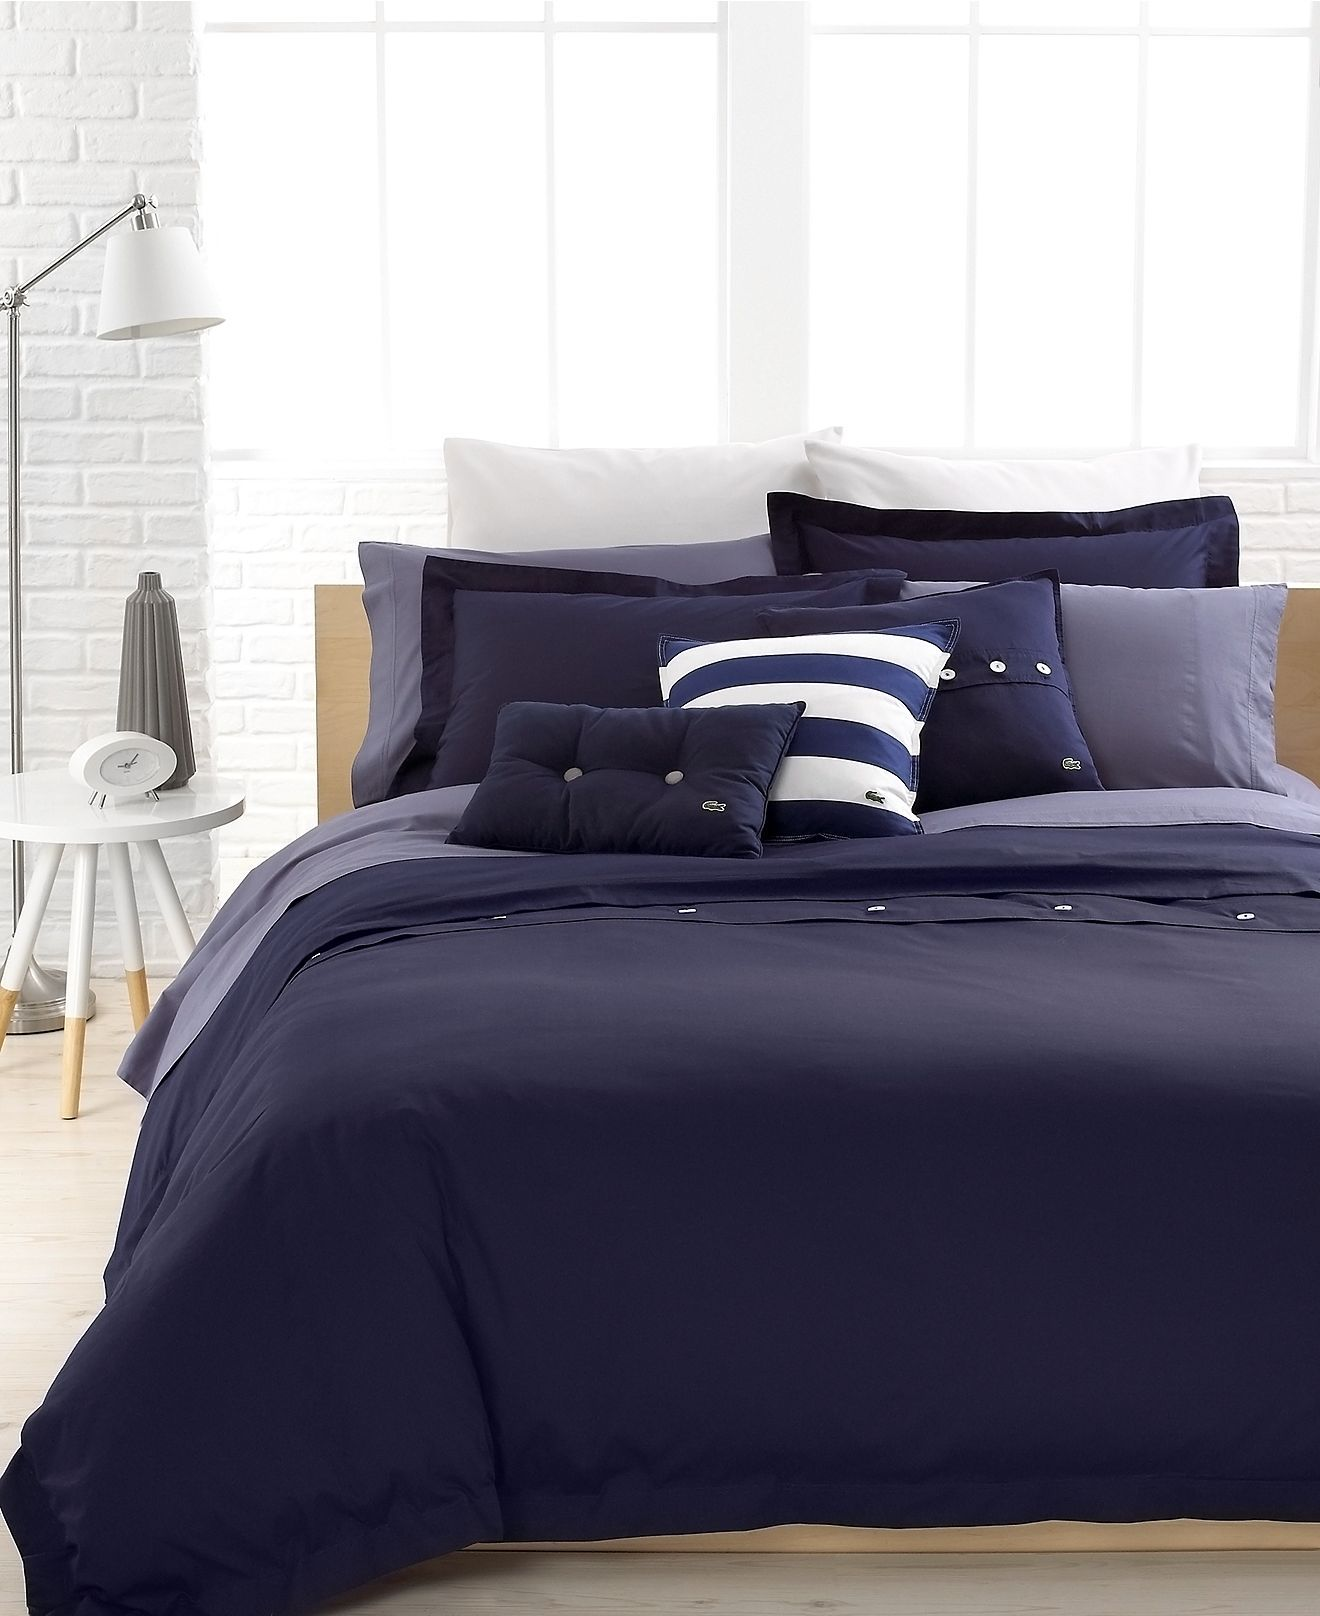 Lacoste Bedding, Solid Peacoat Brushed Twill Comforter and ...